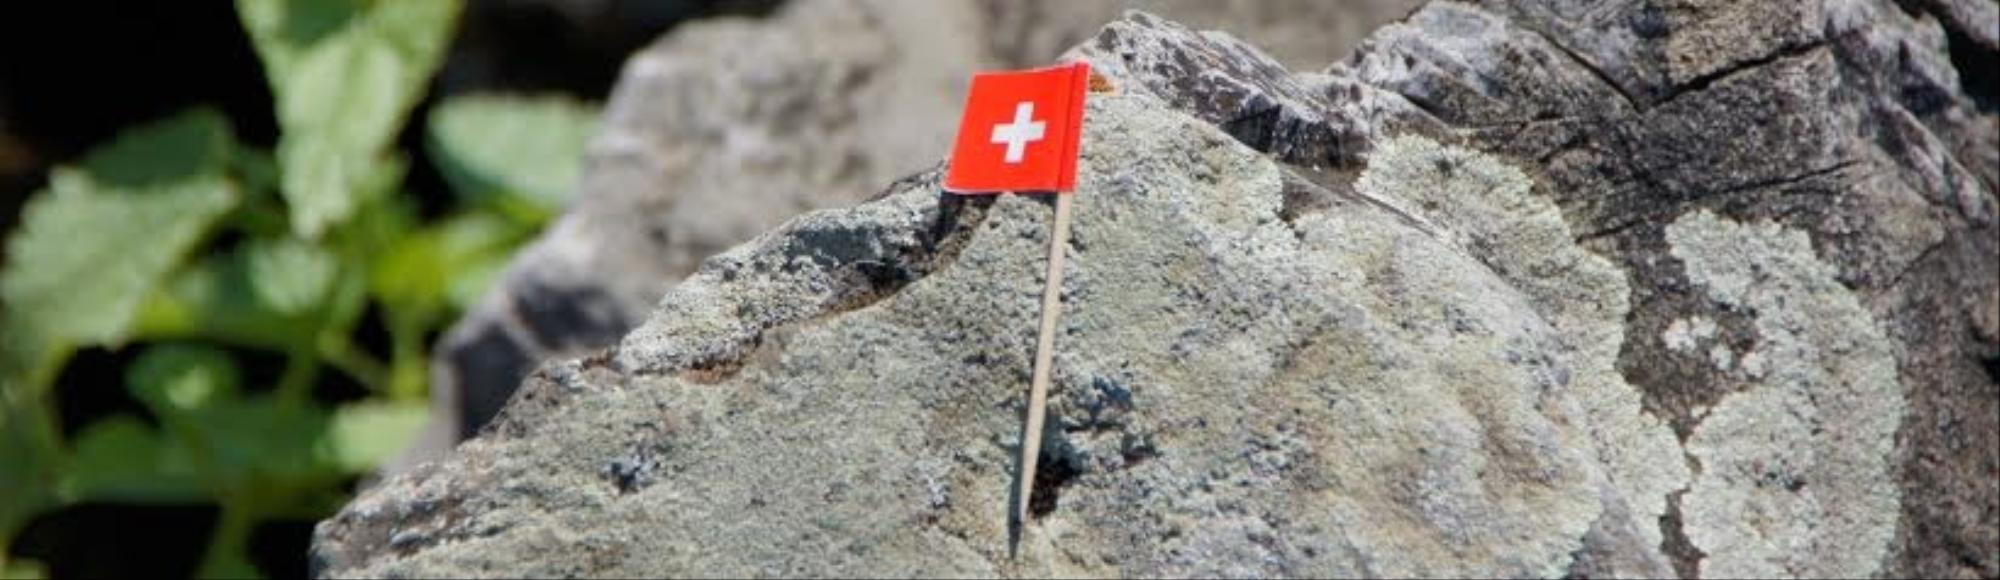 Surprise Move By Swiss National Bank Sends Currency Soaring and Stocks Tanking